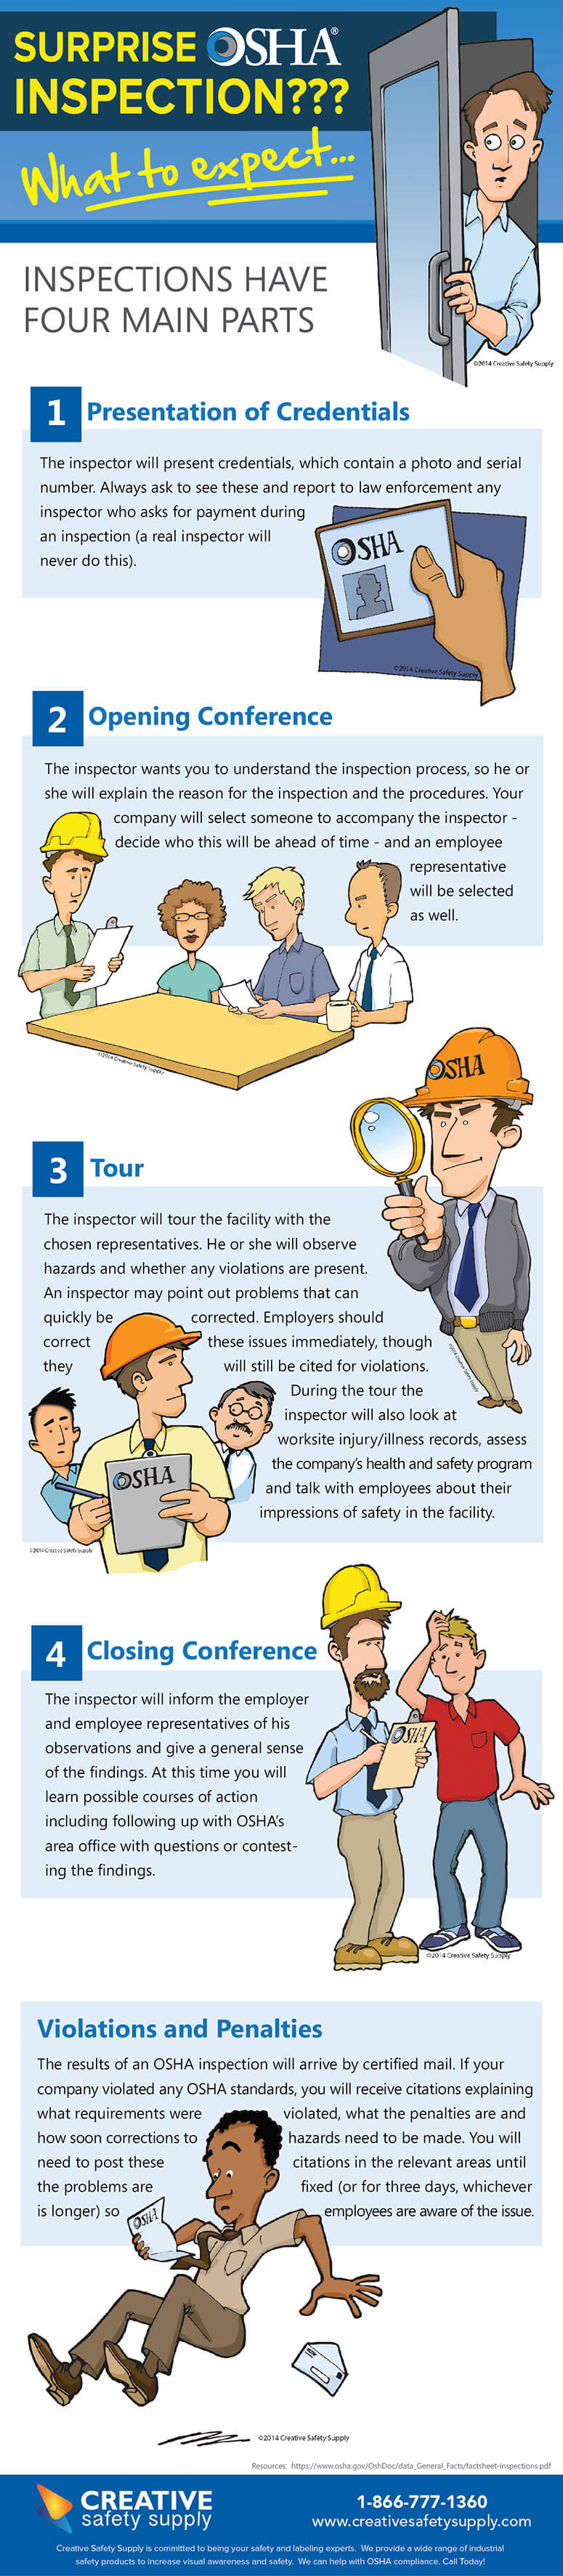 Surprise OSHA inspection - Infographic